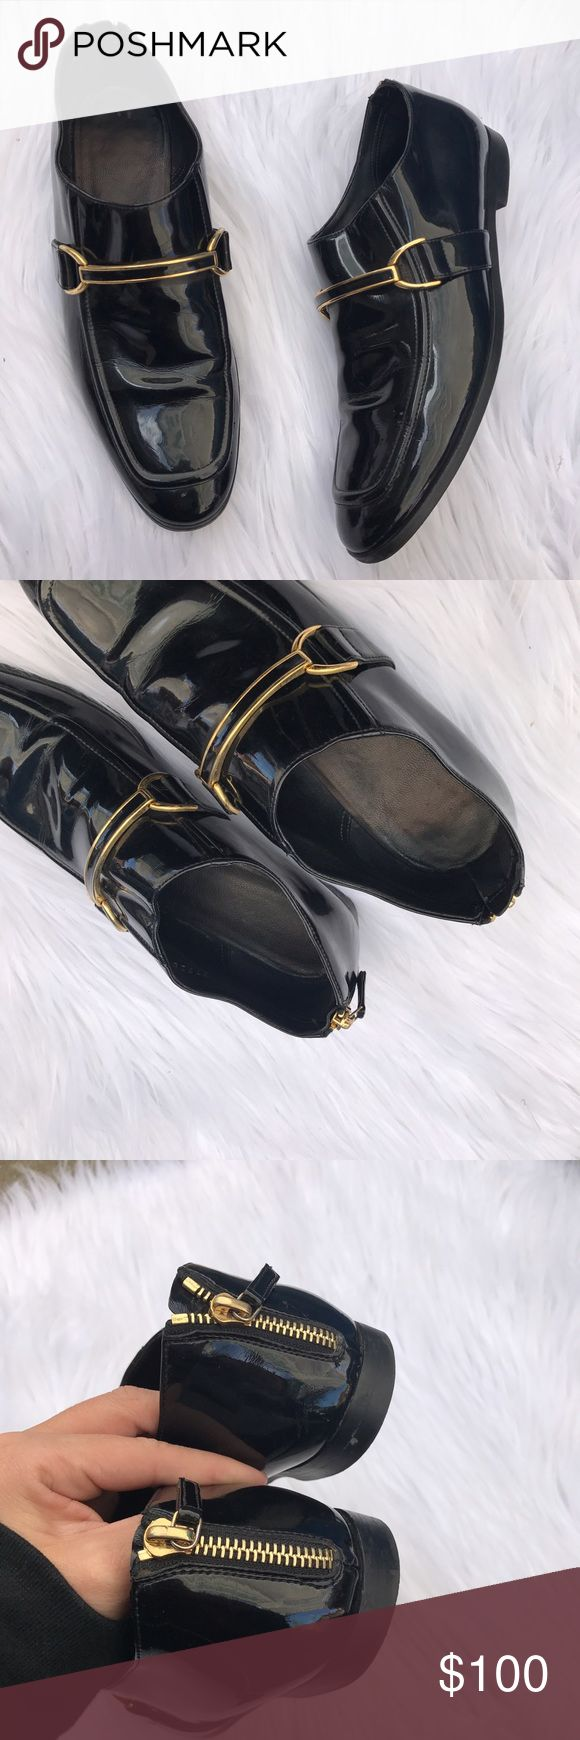 STELLA MCCARTNEY SZ 7.5 BLACK PATENT LEATHER SHOES These are amazing .. even better not we in person .. these are super fancy and super edgy all at the same time , and for a great price since they cost so much for retail:) Stella McCartney Shoes